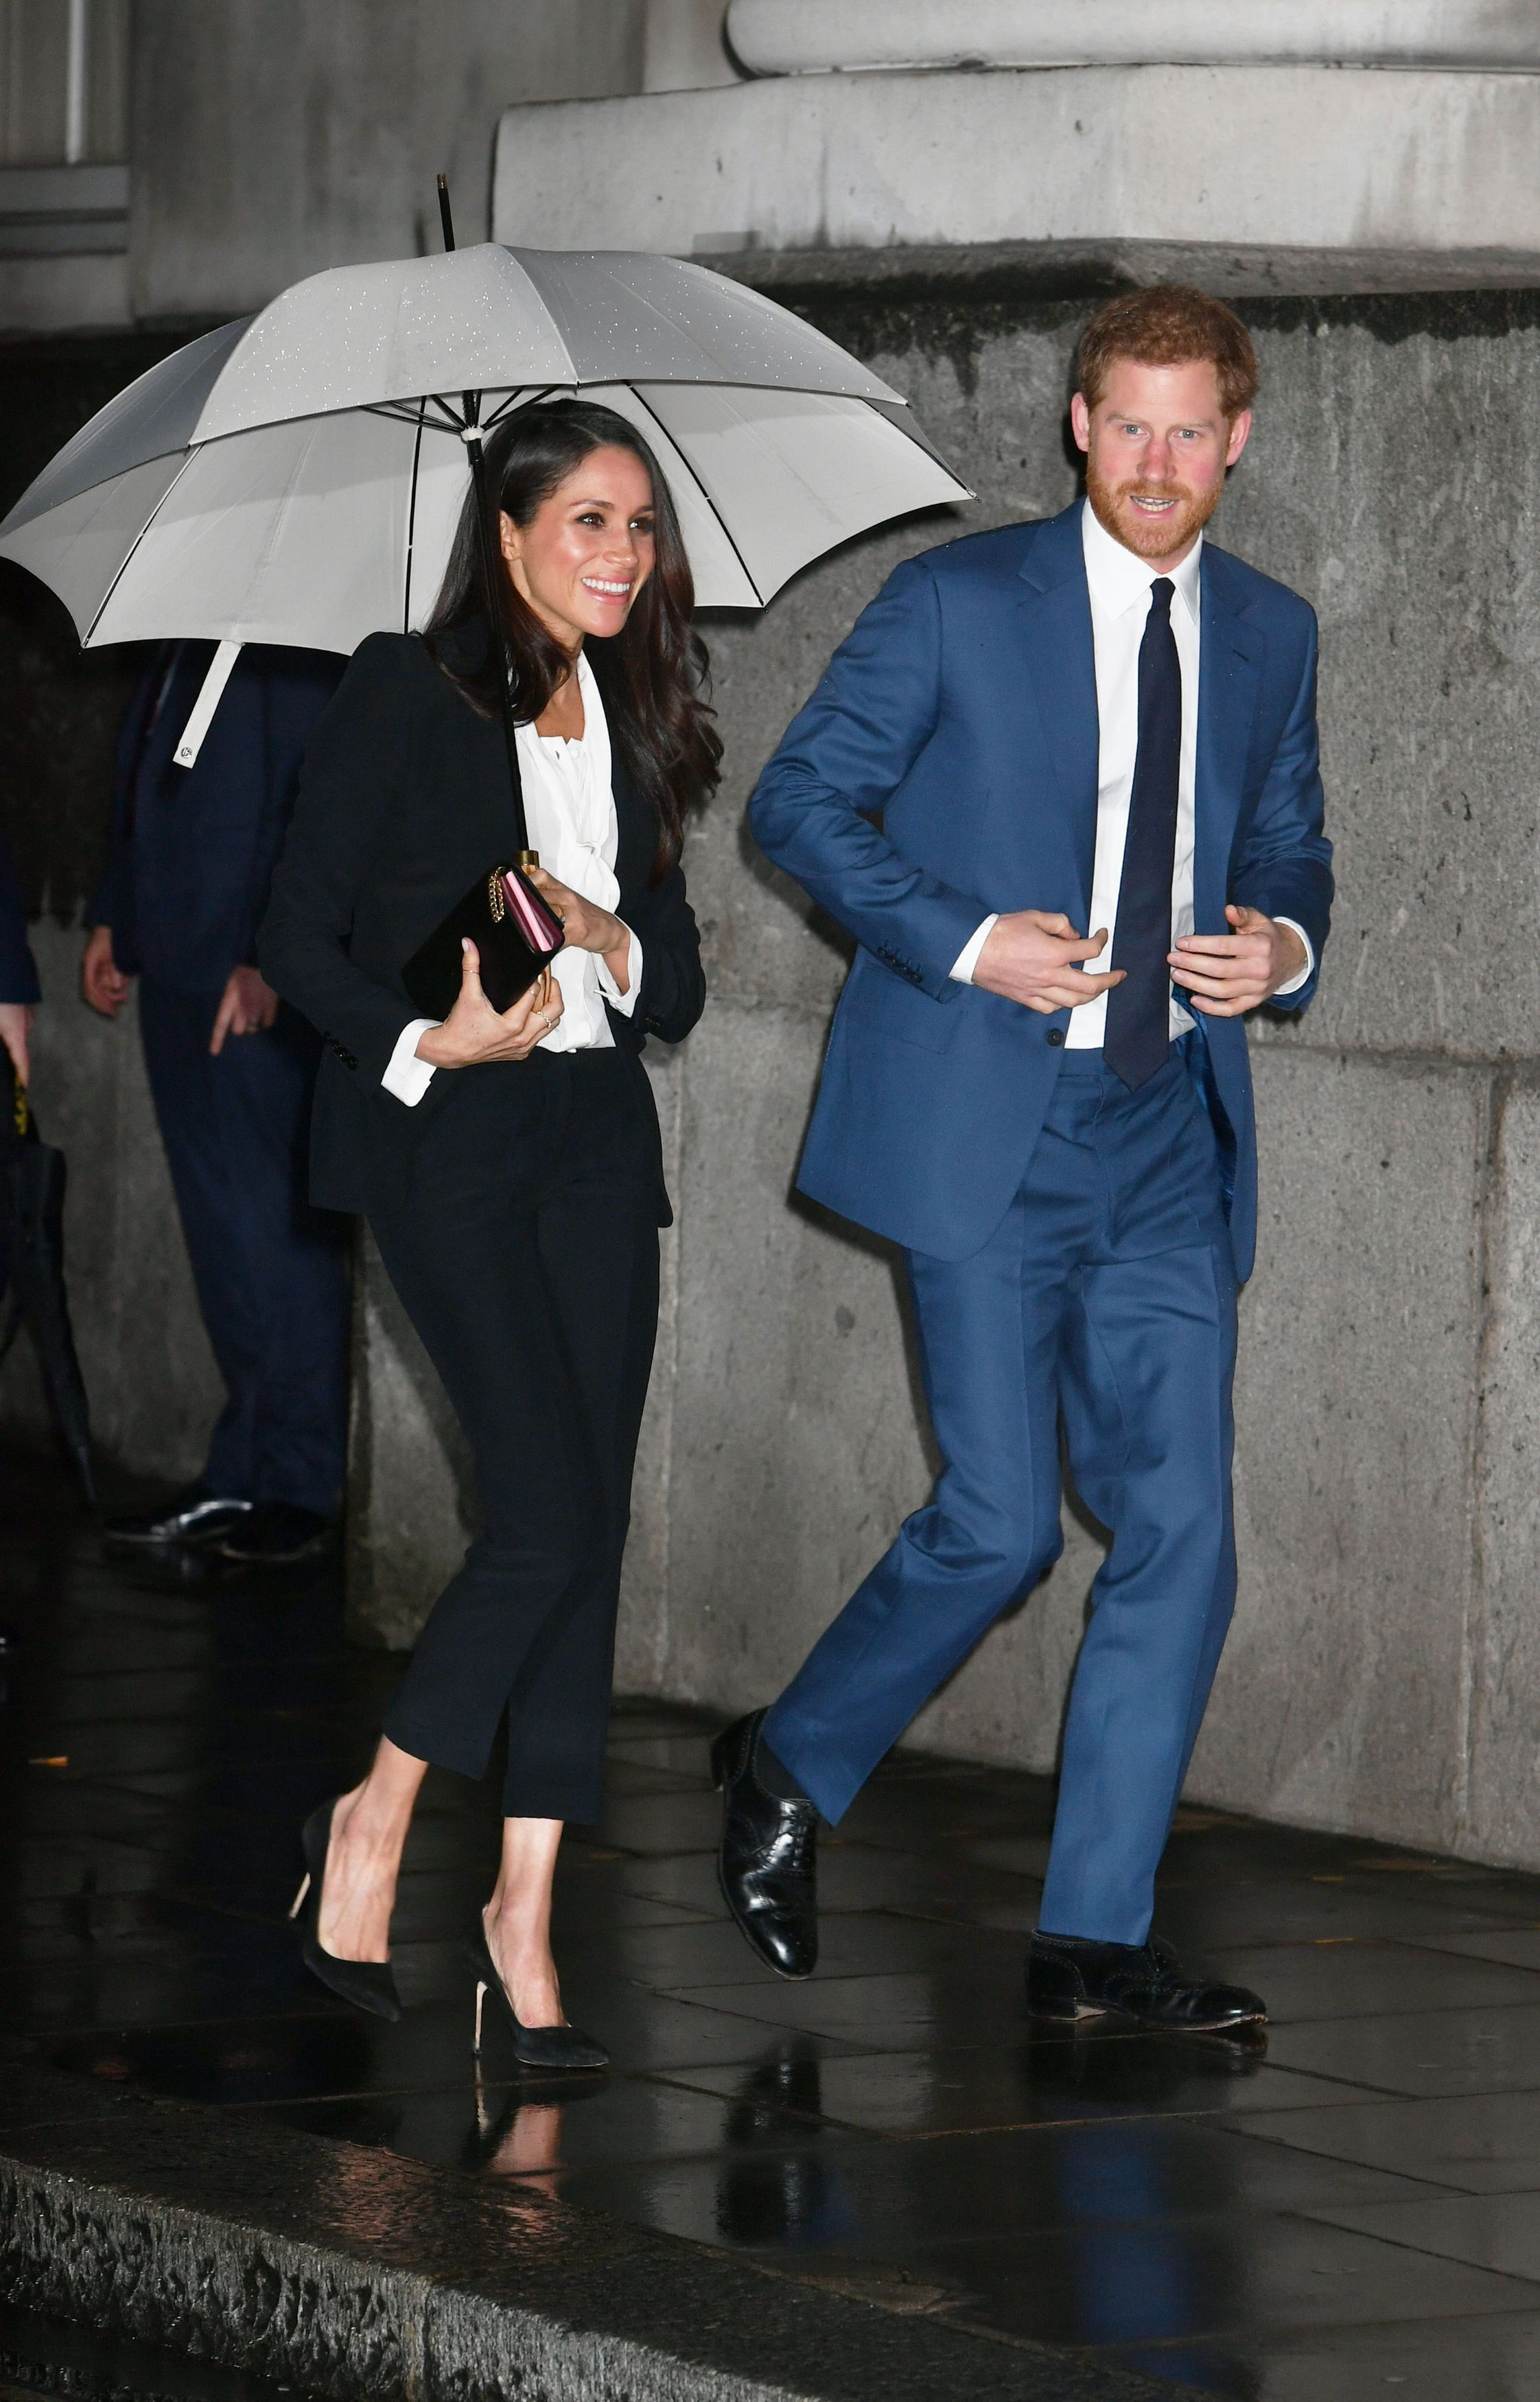 Prince Harry and Meghan Markle arrive at the annual Endeavour Fund Awards in London in